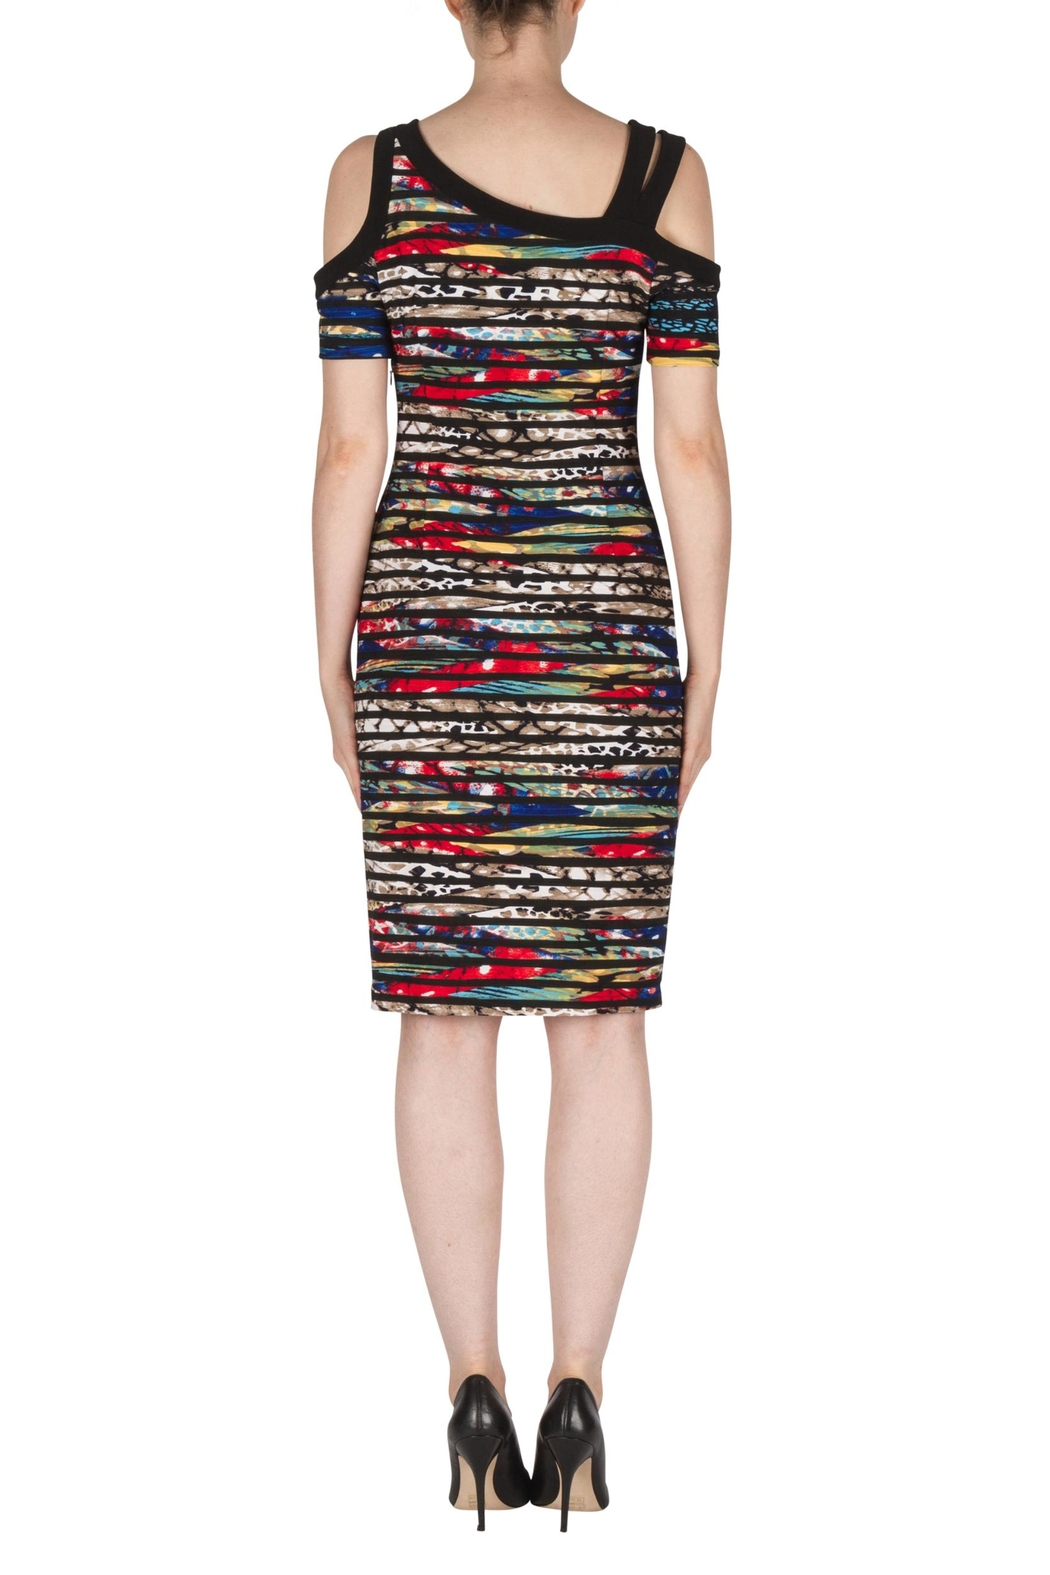 Joseph Ribkoff Kristin Multi-Colored Dress - Side Cropped Image